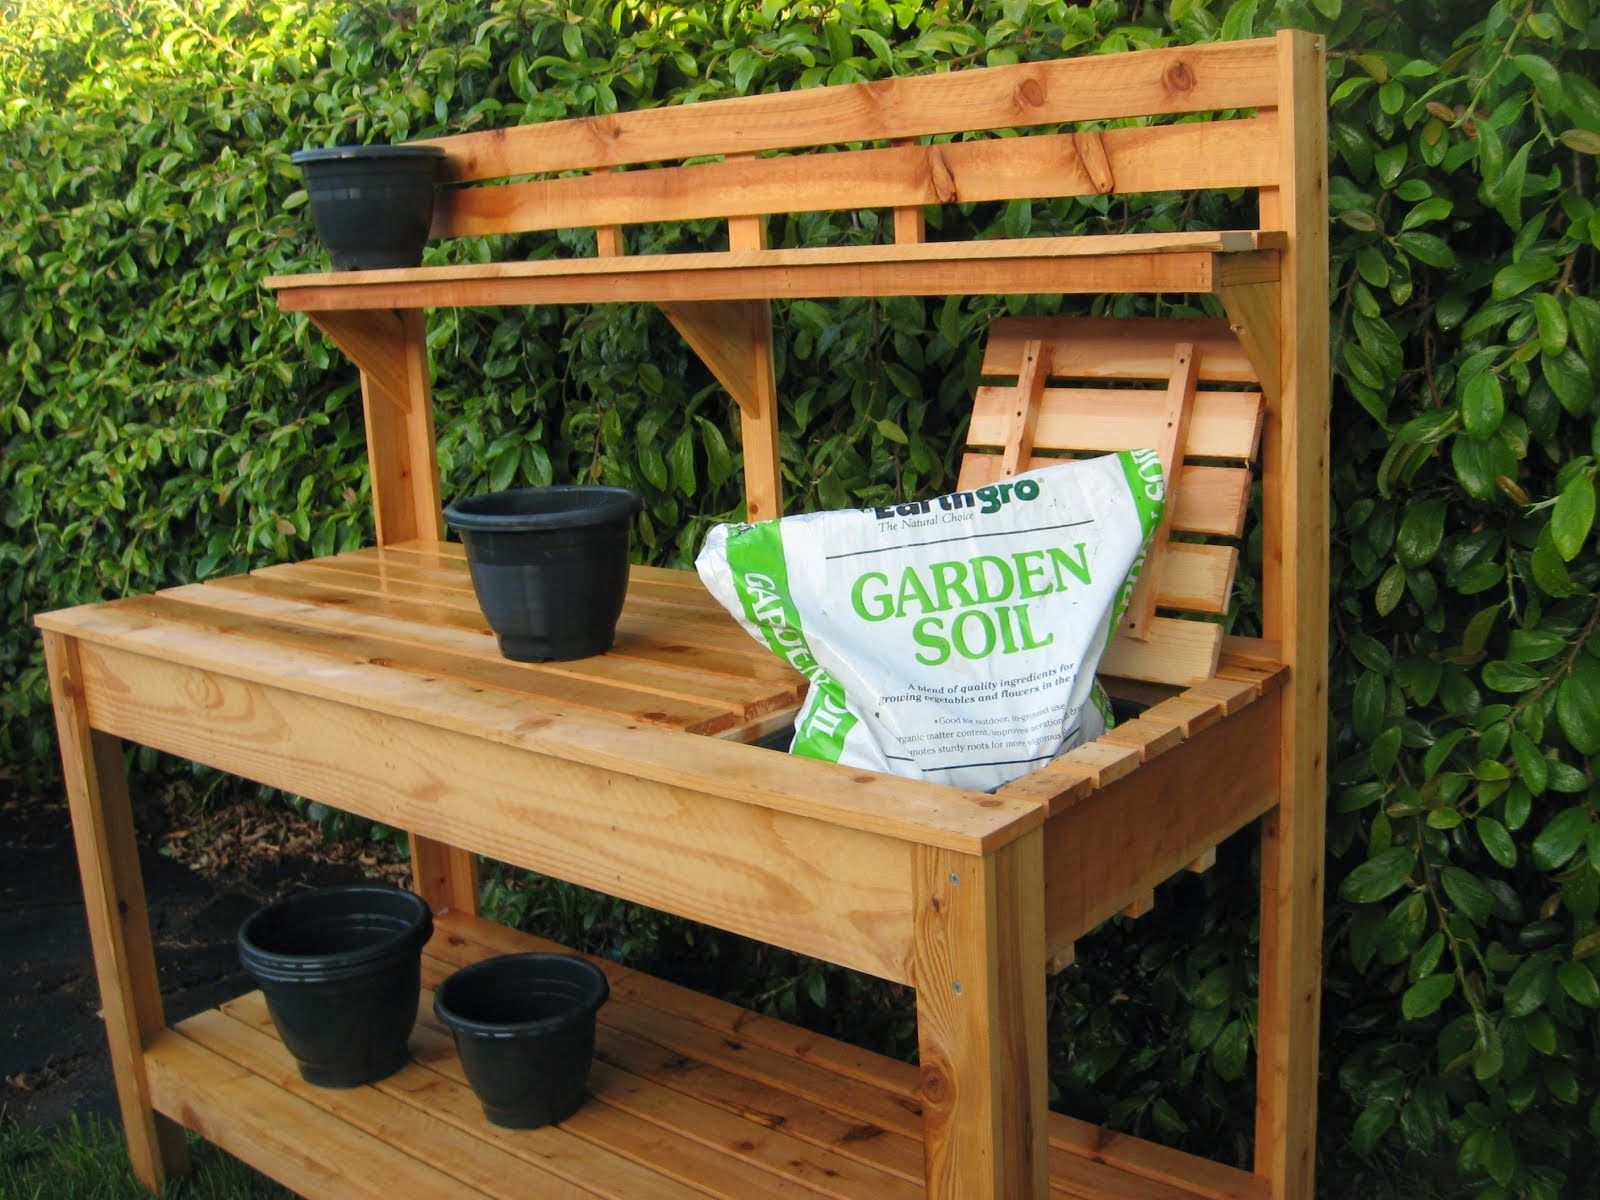 Outdoor potting bench lowes designs bench pinterest for Garden design kits